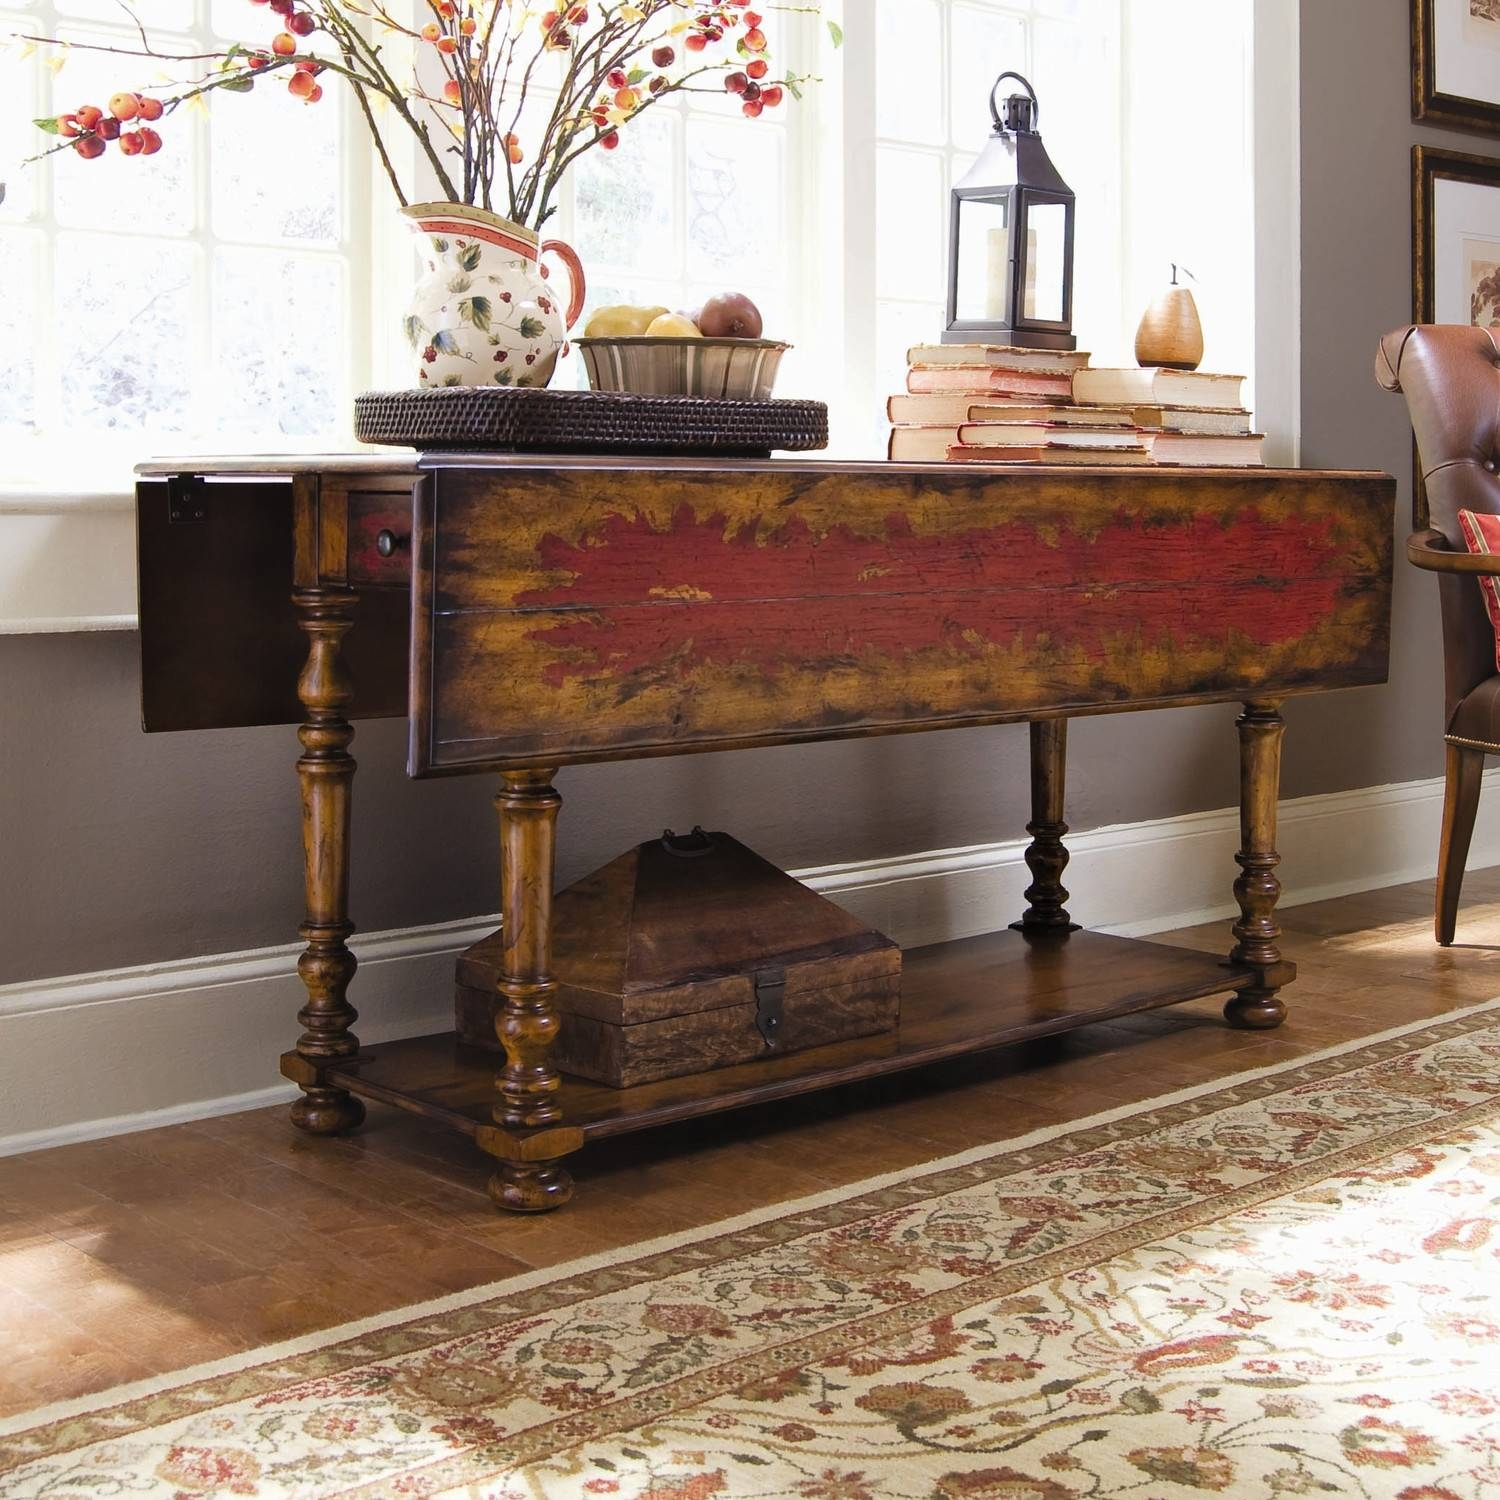 Drop Leaf Sofa Table: Large Or Space-Effective Do You Need with Shabby Chic Sofa Tables (Image 6 of 15)